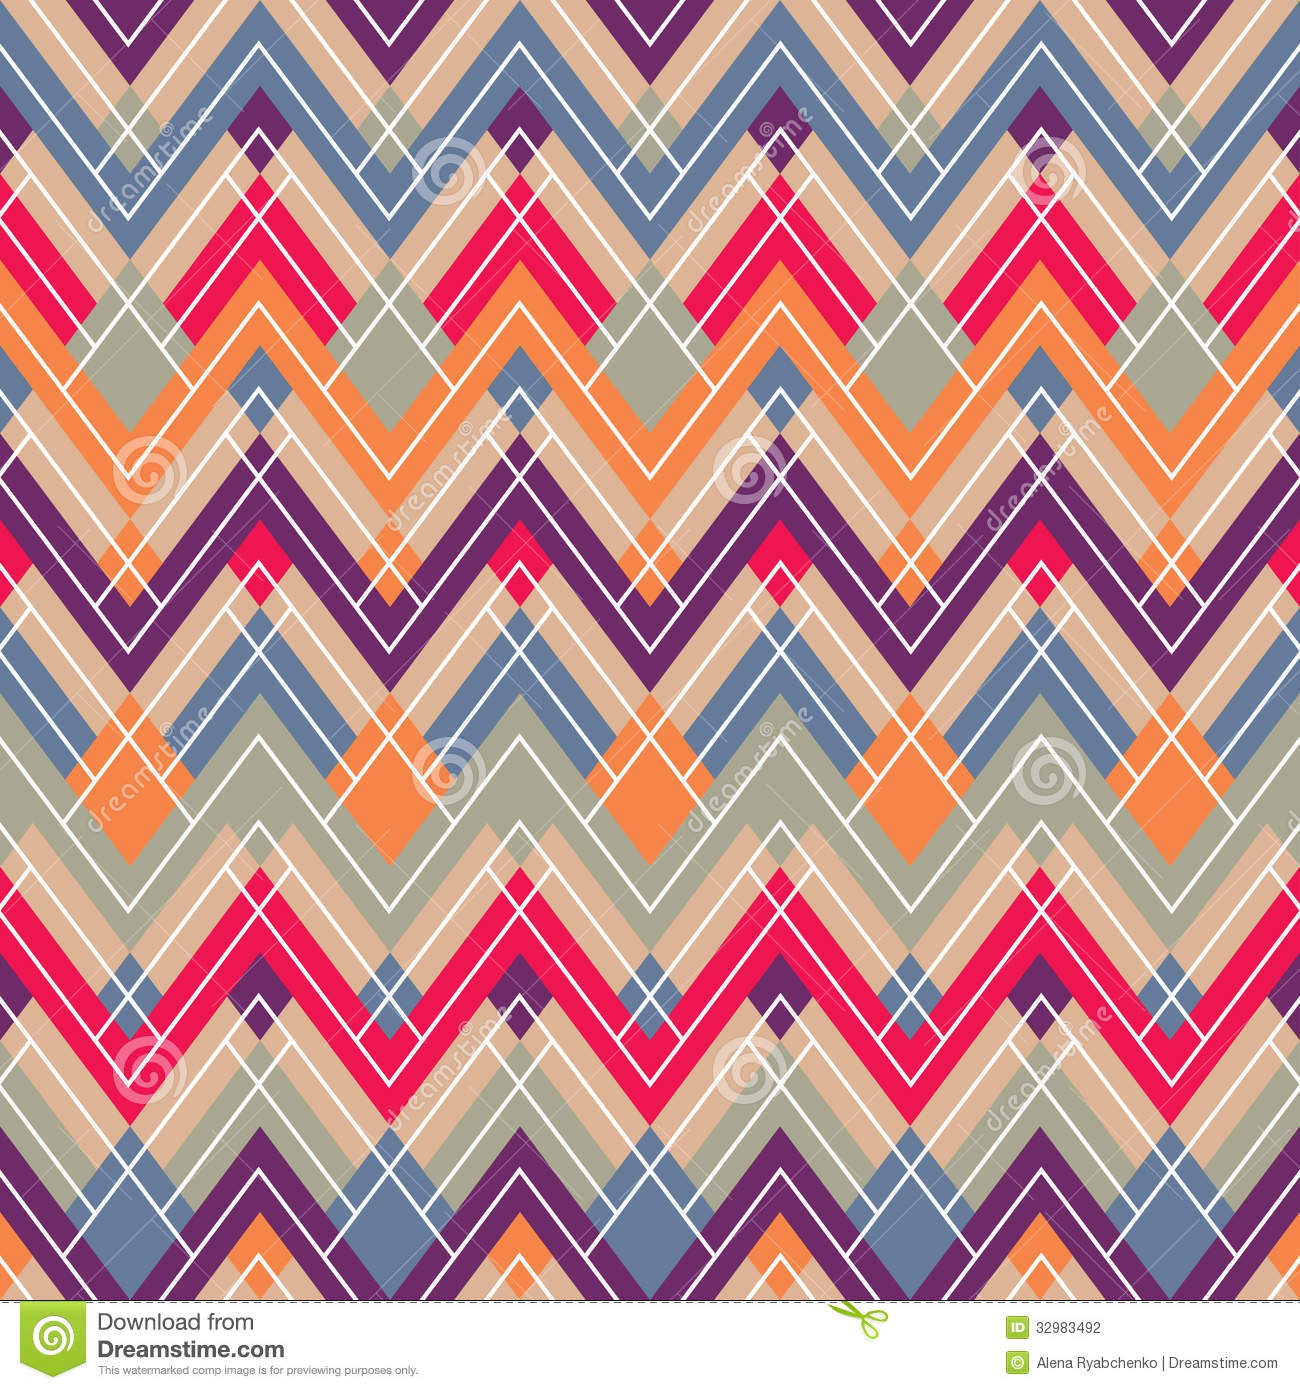 abstract geometric colorful background - photo #37